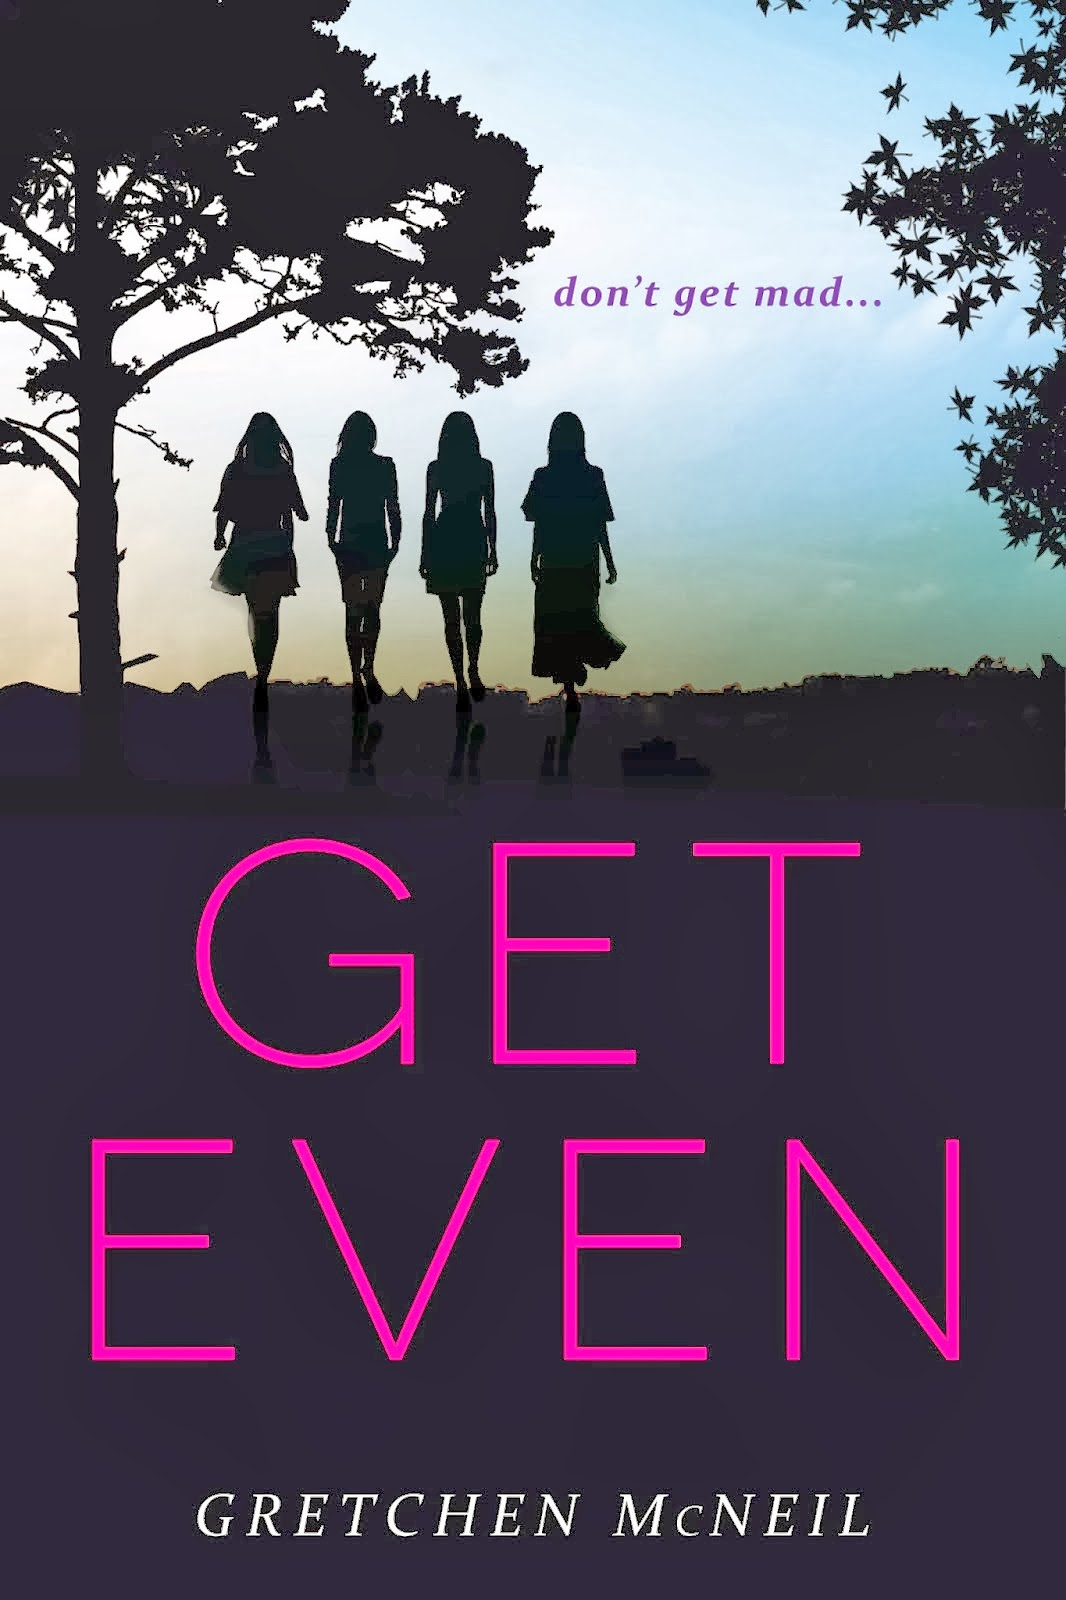 http://www.cover2coverblog.blogspot.com/2014/02/cover-reveal-get-even-by-grethen-mcneil.html